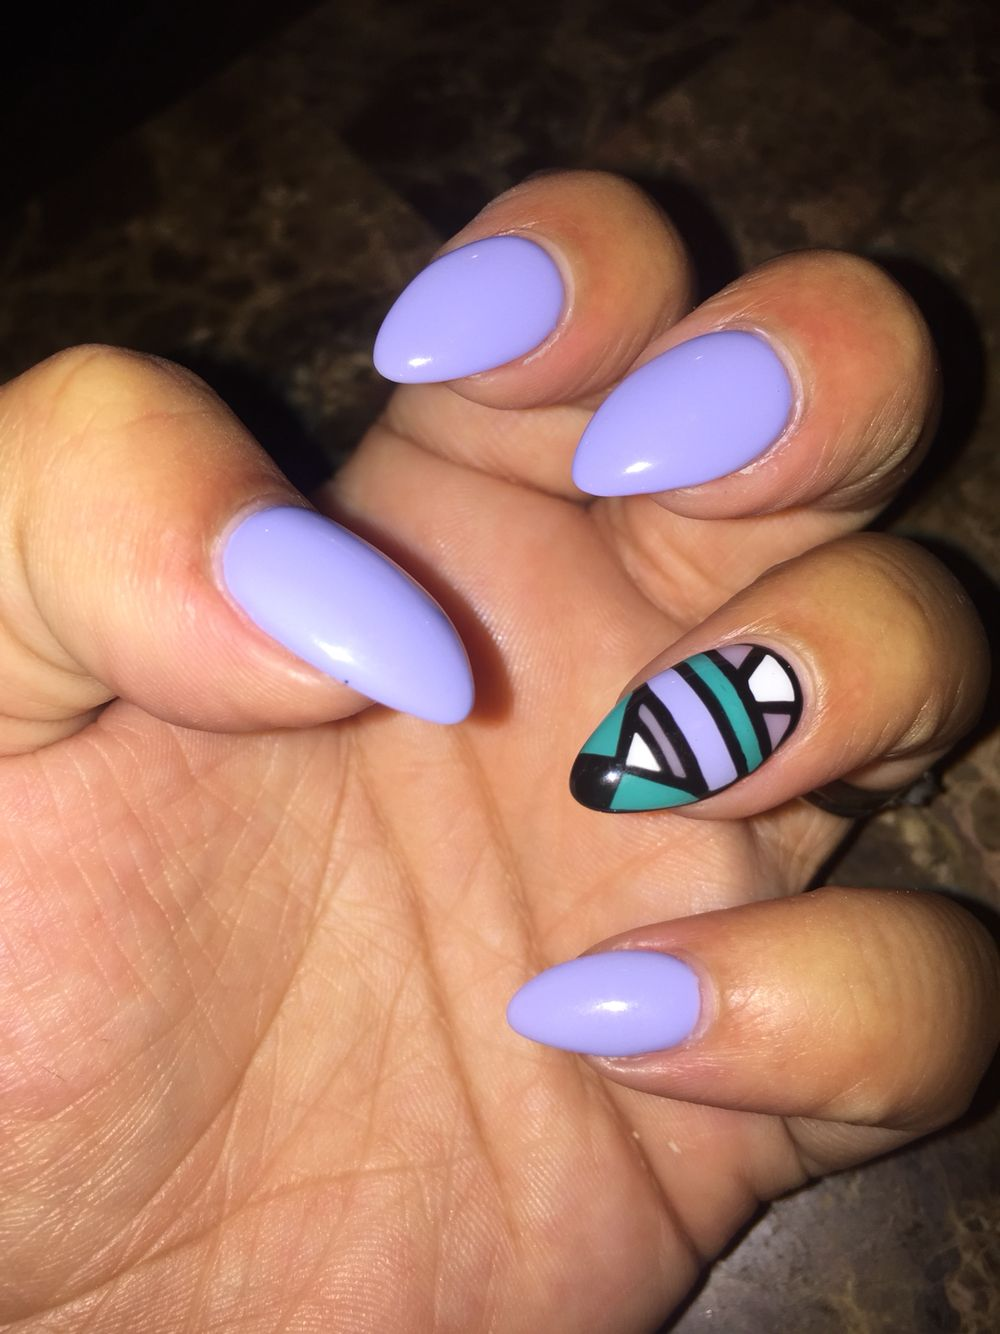 Almond shaped nails periwinkle gel nails design | Nails | Pinterest